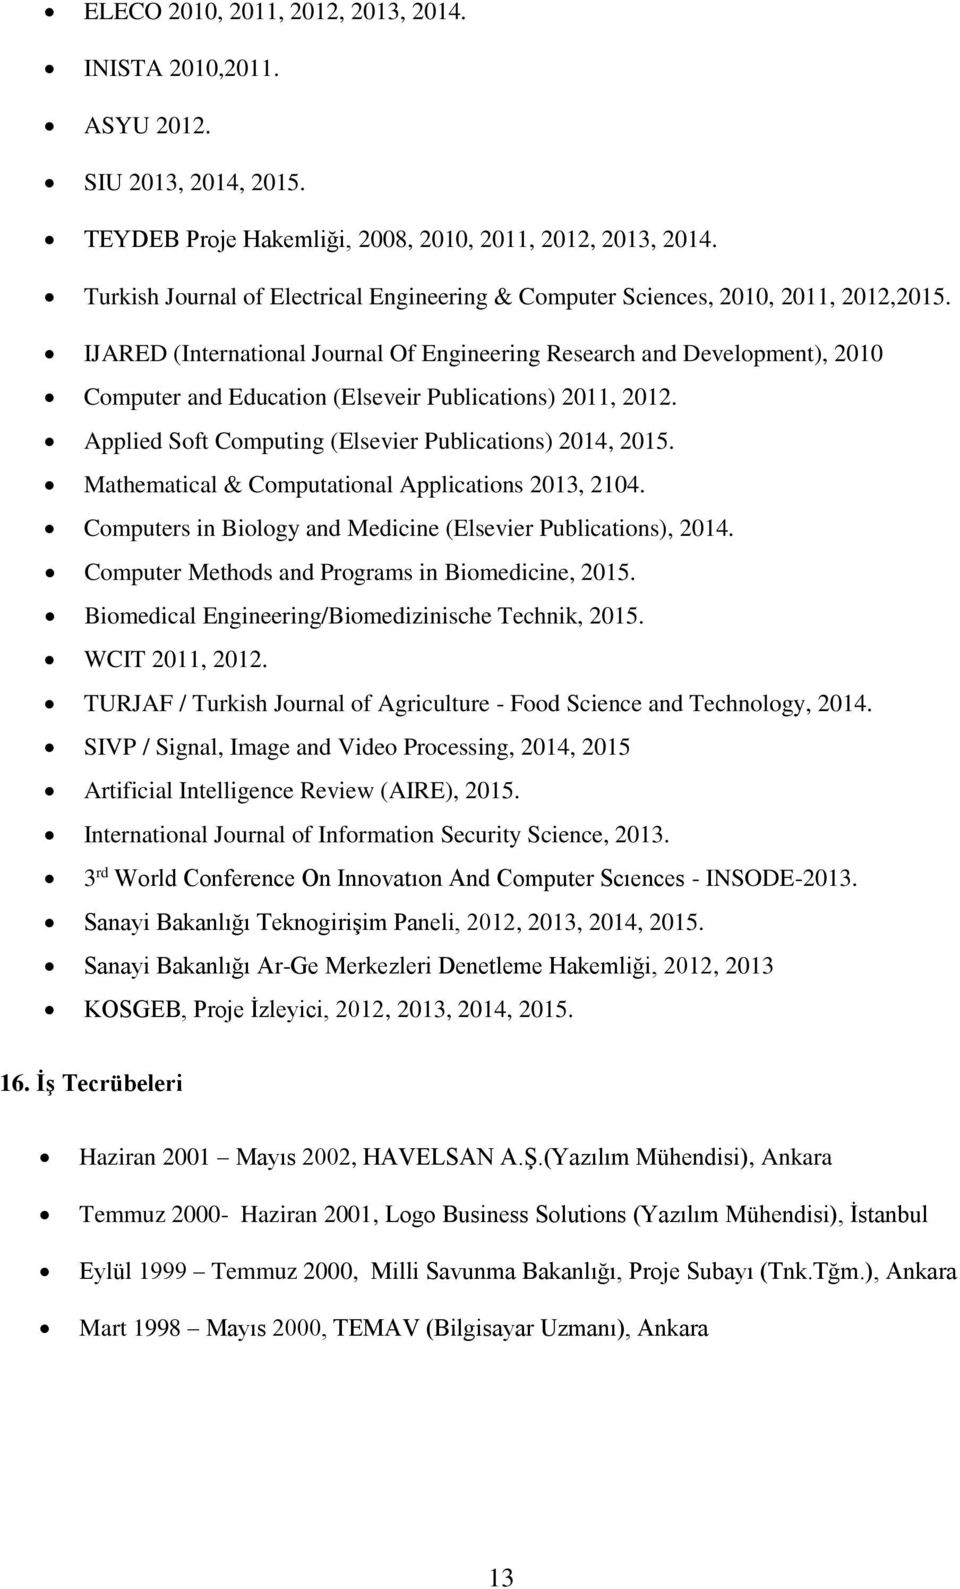 IJARED (International Journal Of Engineering Research and Development), 2010 Computer and Education (Elseveir Publications) 2011, 2012. Applied Soft Computing (Elsevier Publications) 2014, 2015.